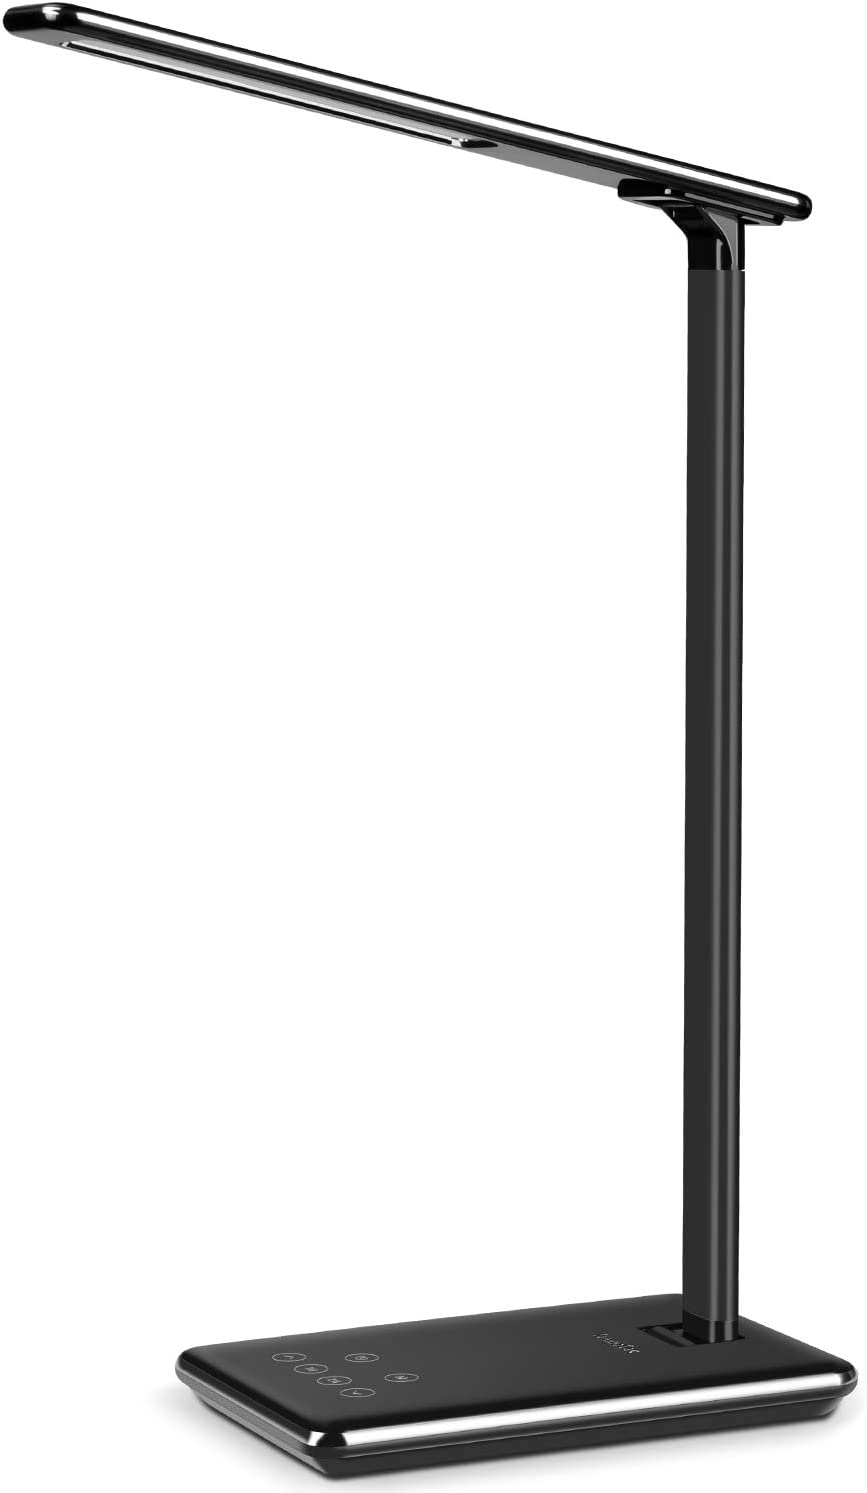 TenmaTec Computer Desk Lamp,Dimmerable Office LED Table Lmap(USB Charging Port,1 or 2 Hour Timer,4 Lighting Modes,6 Brightness Levels) Reading,Study,Computer Work Light for Kids,Piano Black